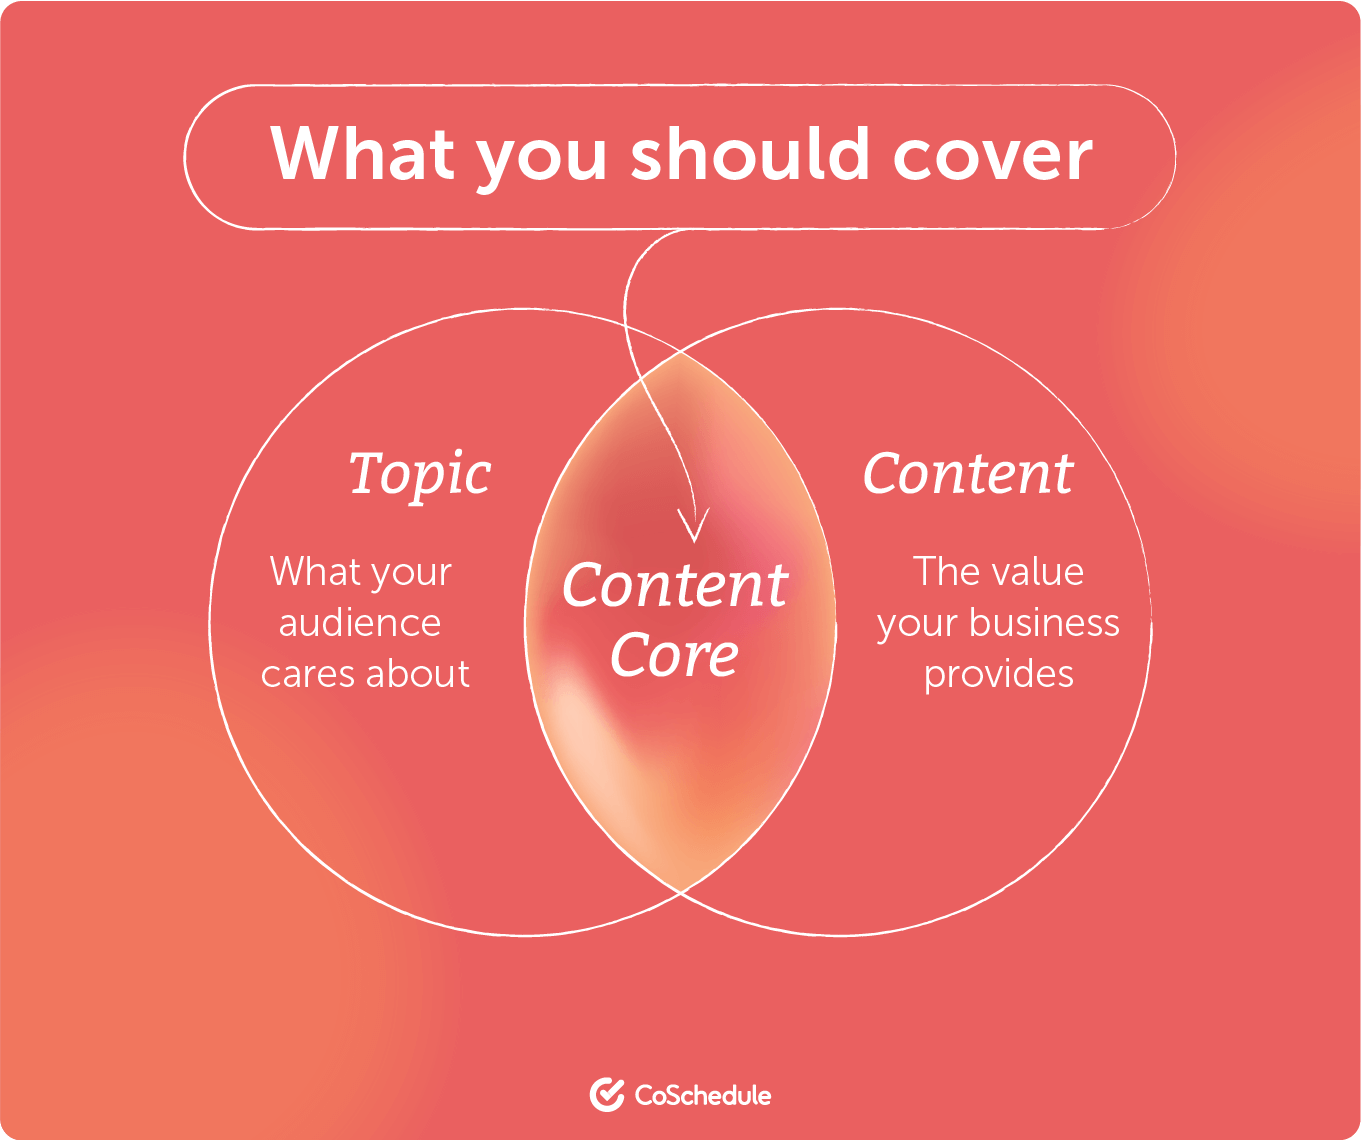 What you should cover content core